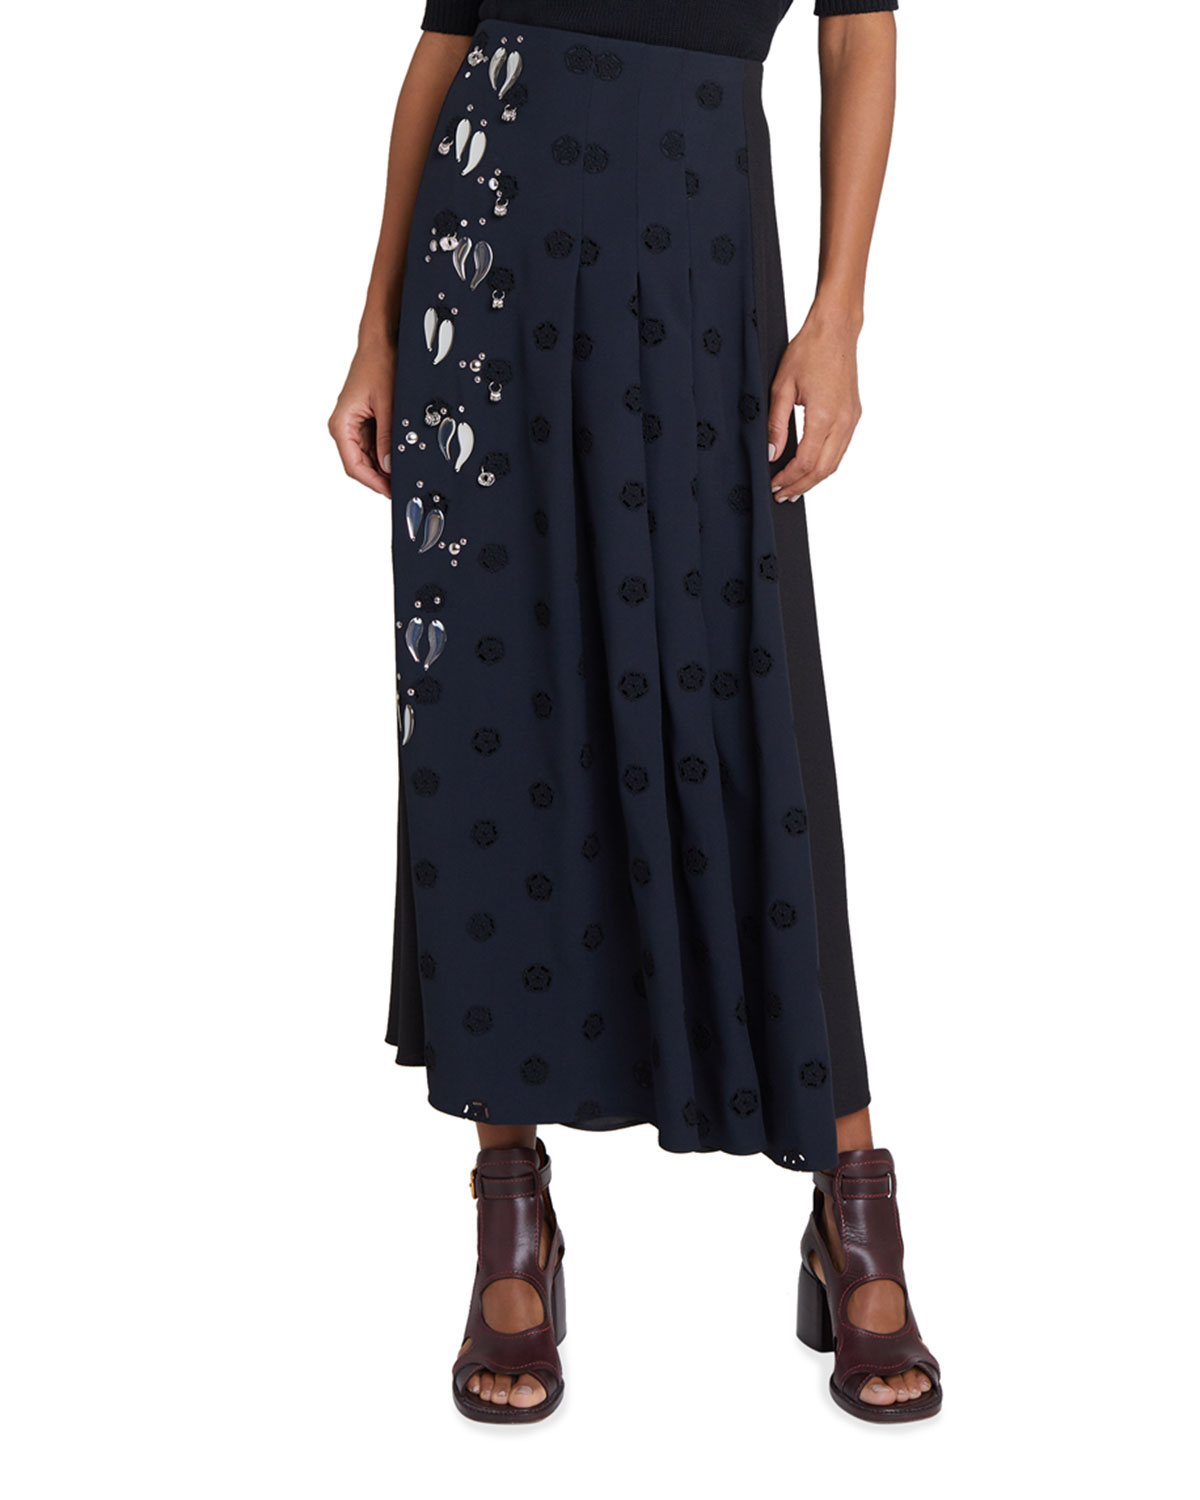 Chloé ELIE JEWELED DOT FLOWER EYELET MIDI SKIRT